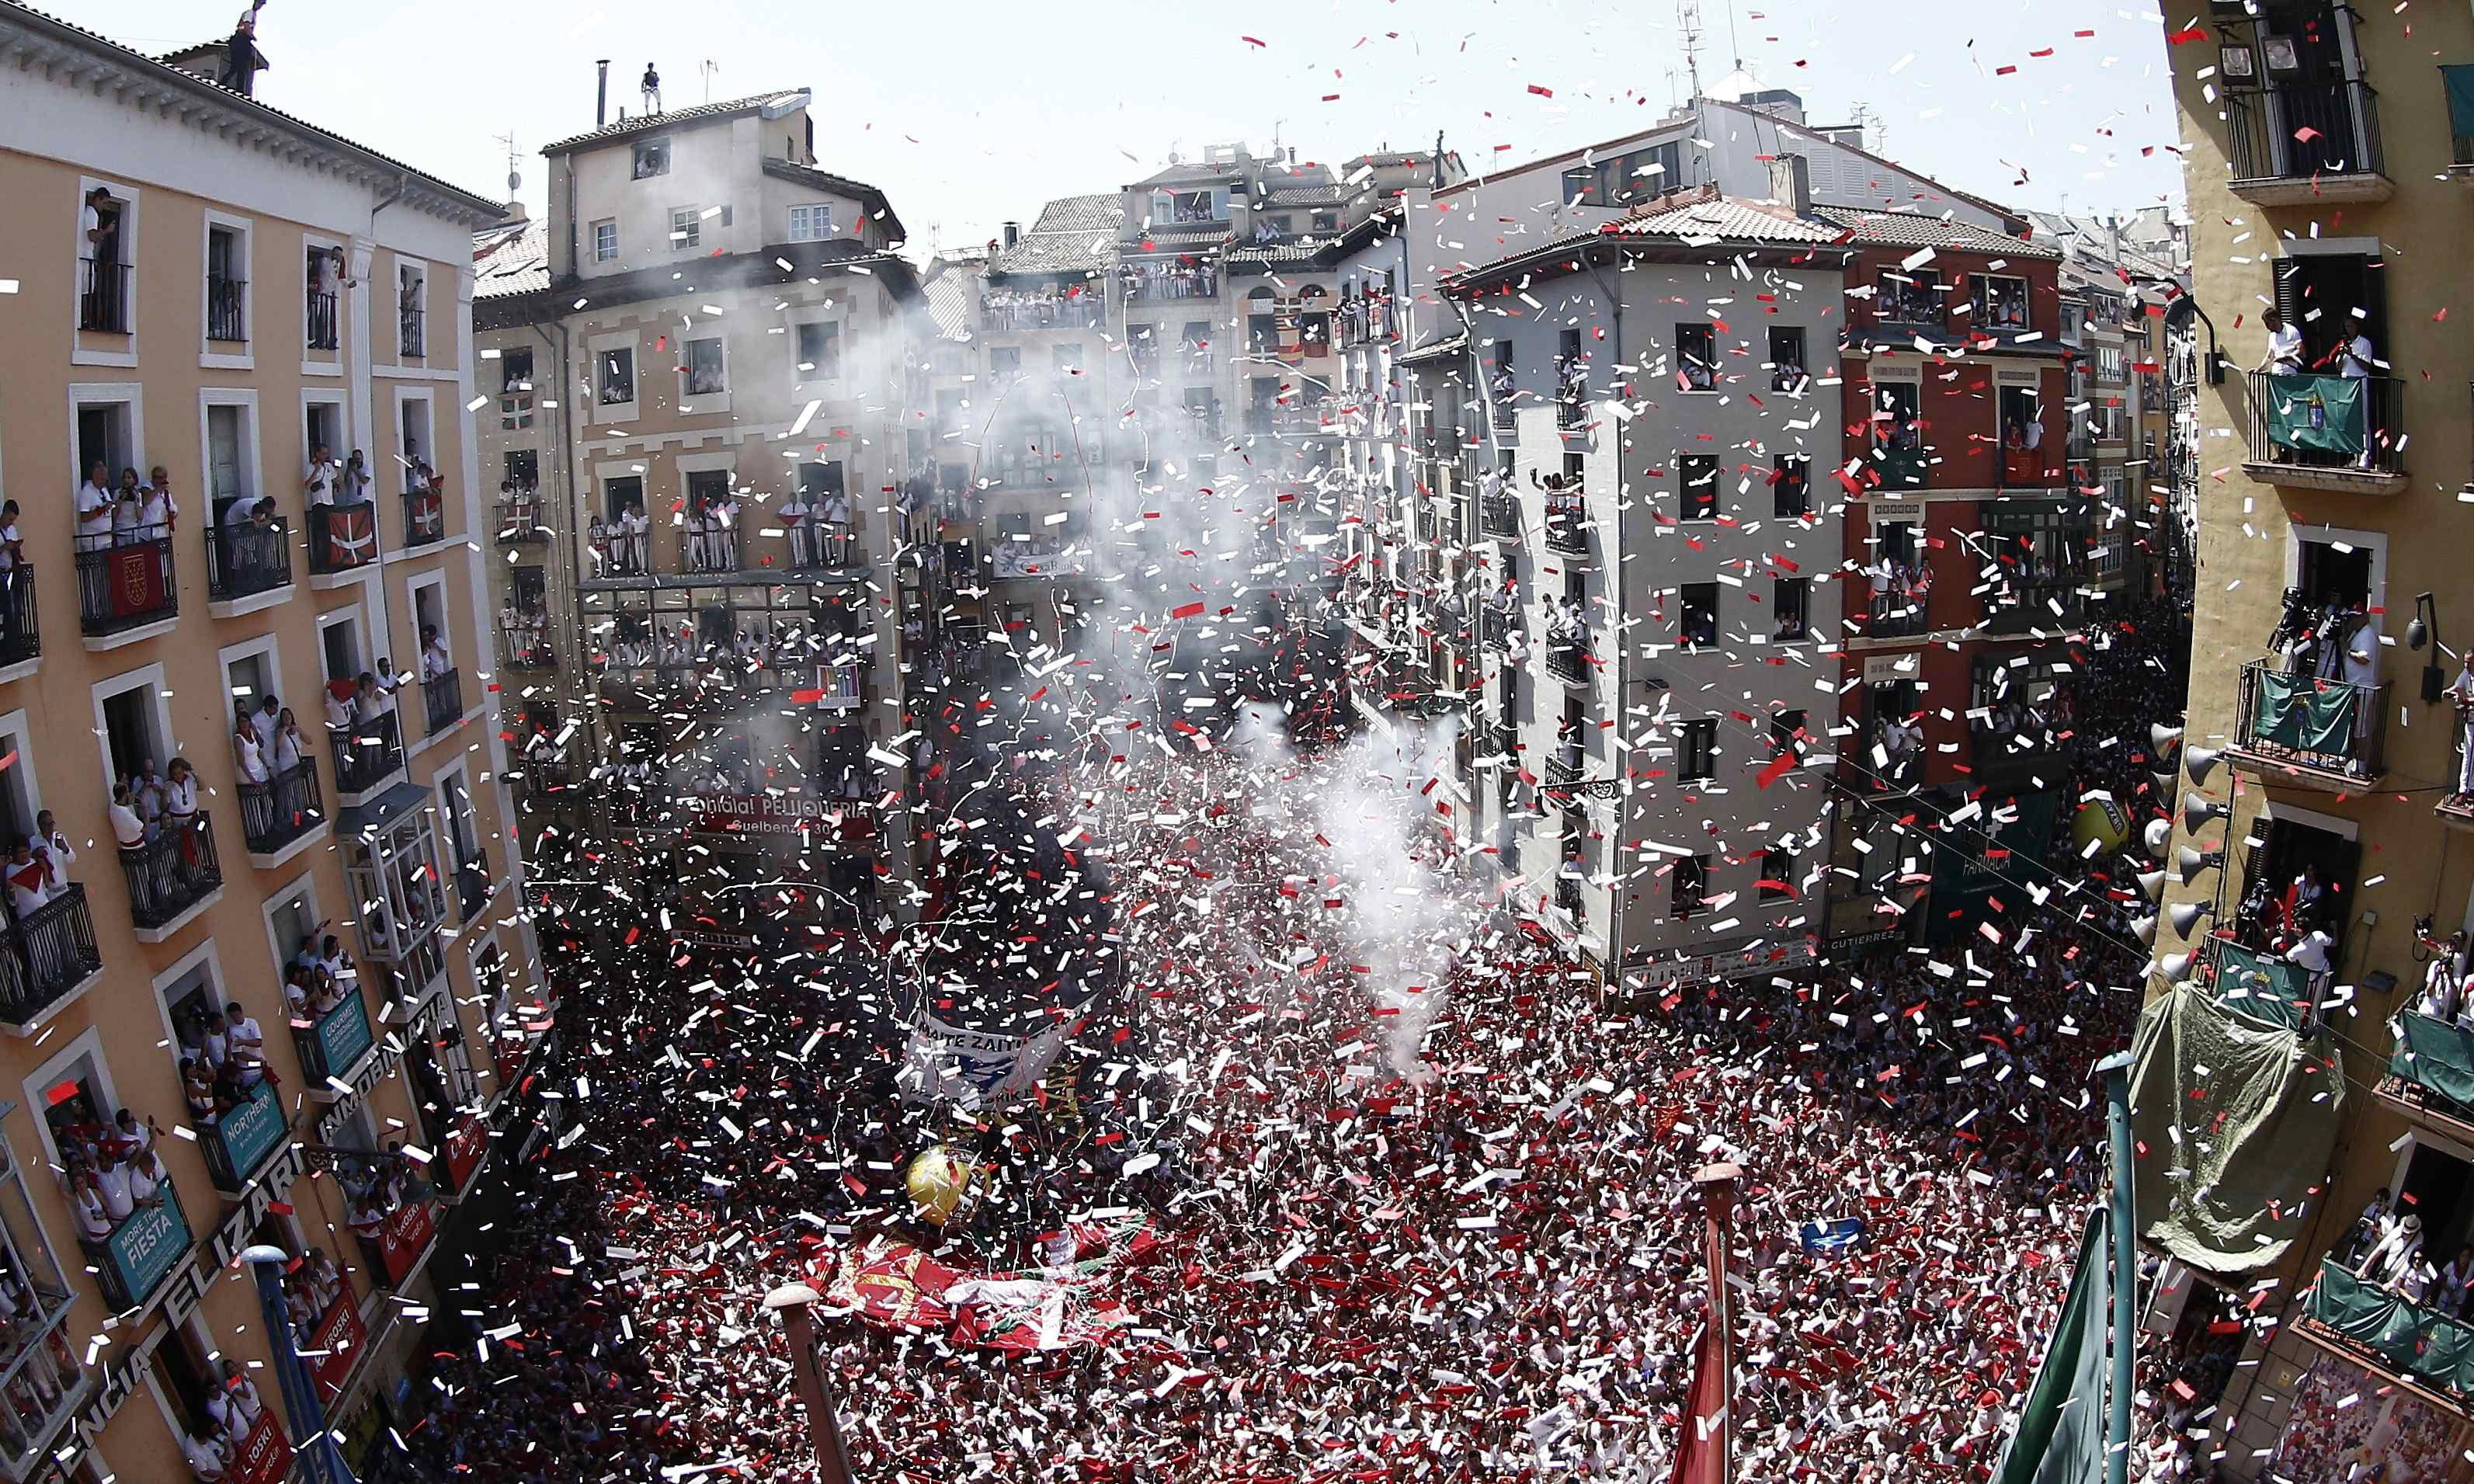 Annual Pamplona bull-run festival begins amid fireworks and protests